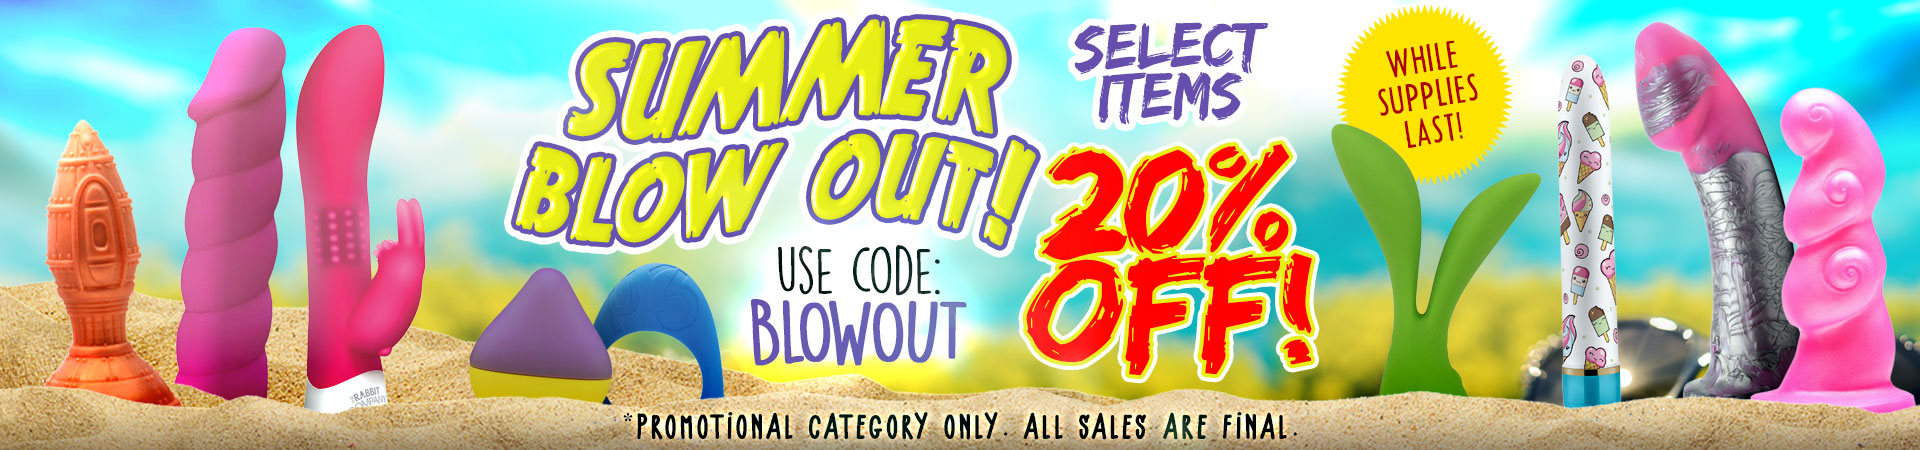 Summer Blowout Sale - Save 20% On Select Items! - Our Biggest Ever! Use Promo Code: BLOWOUT - Hurry While Supplies Last!